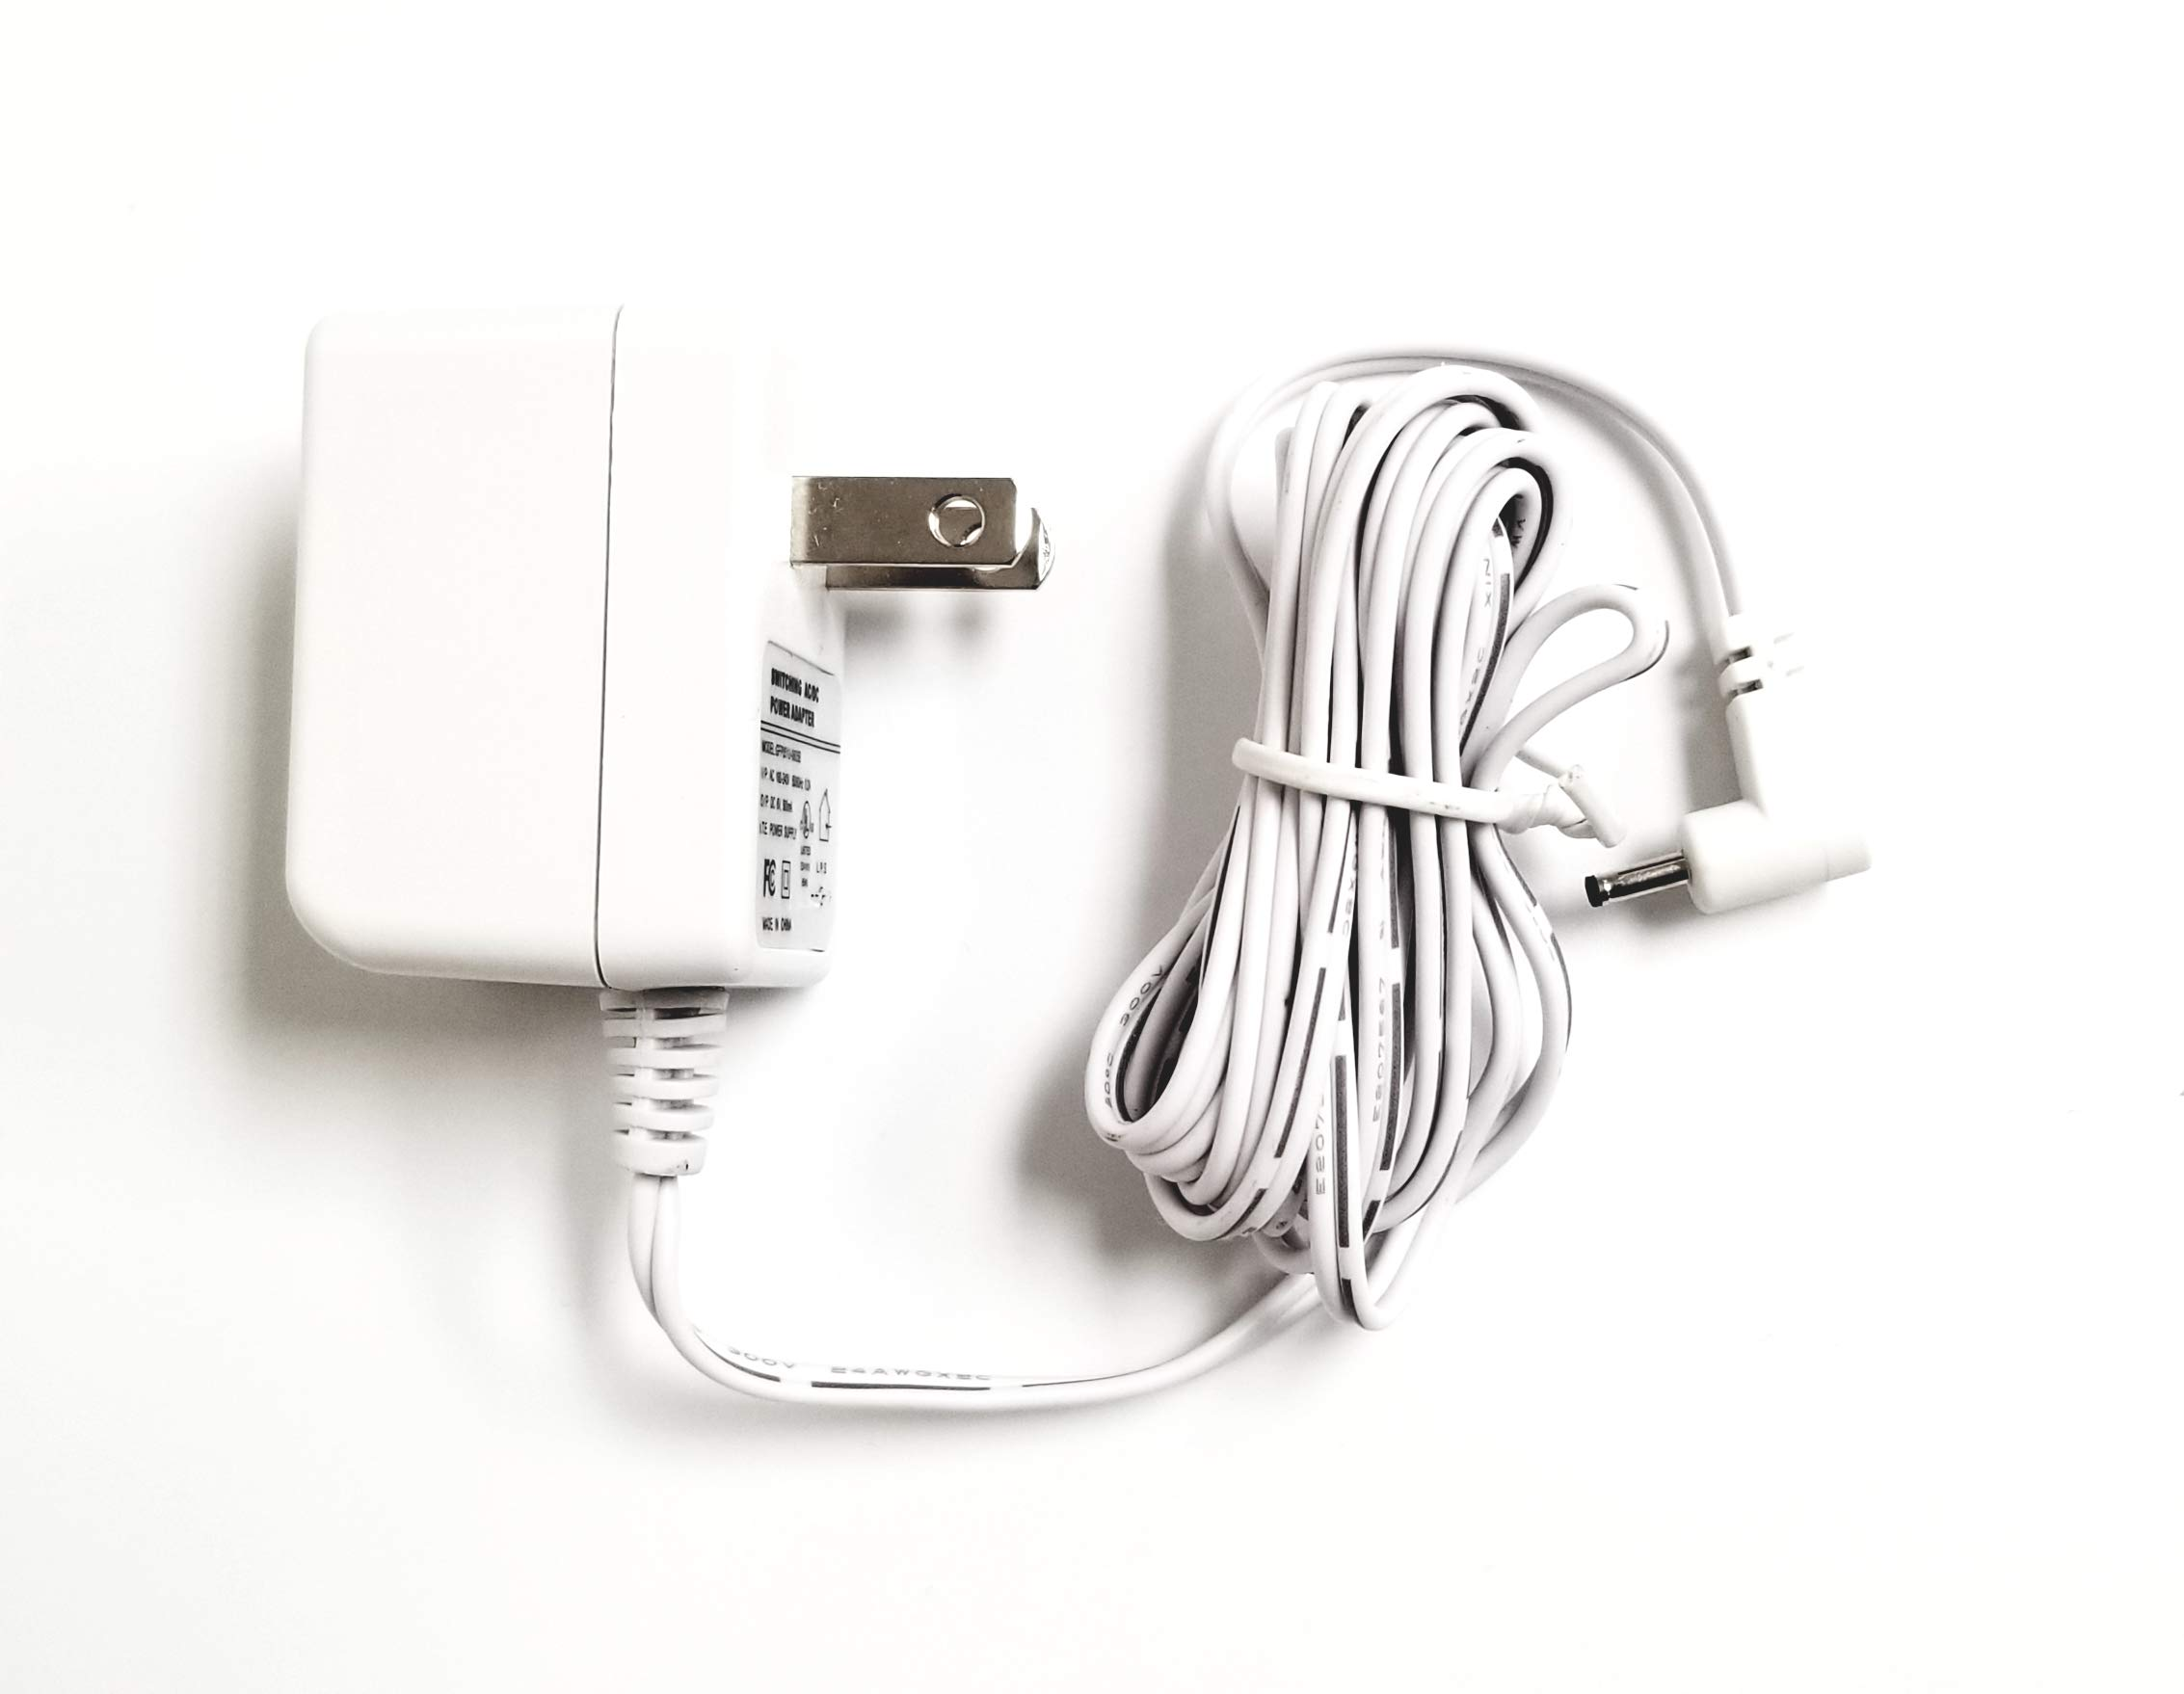 Shira Ac Power Adapter Charger BARREL PLUG STYLE ONLY for Motorola Video Baby Monitor Mbp18 Mbp25 Mbp26 mbp27t MBP33 MBP36 Mbp34 Mbp35 Mbp41 Mbp43 FOR THE PARENT UNIT ONLY WHITE